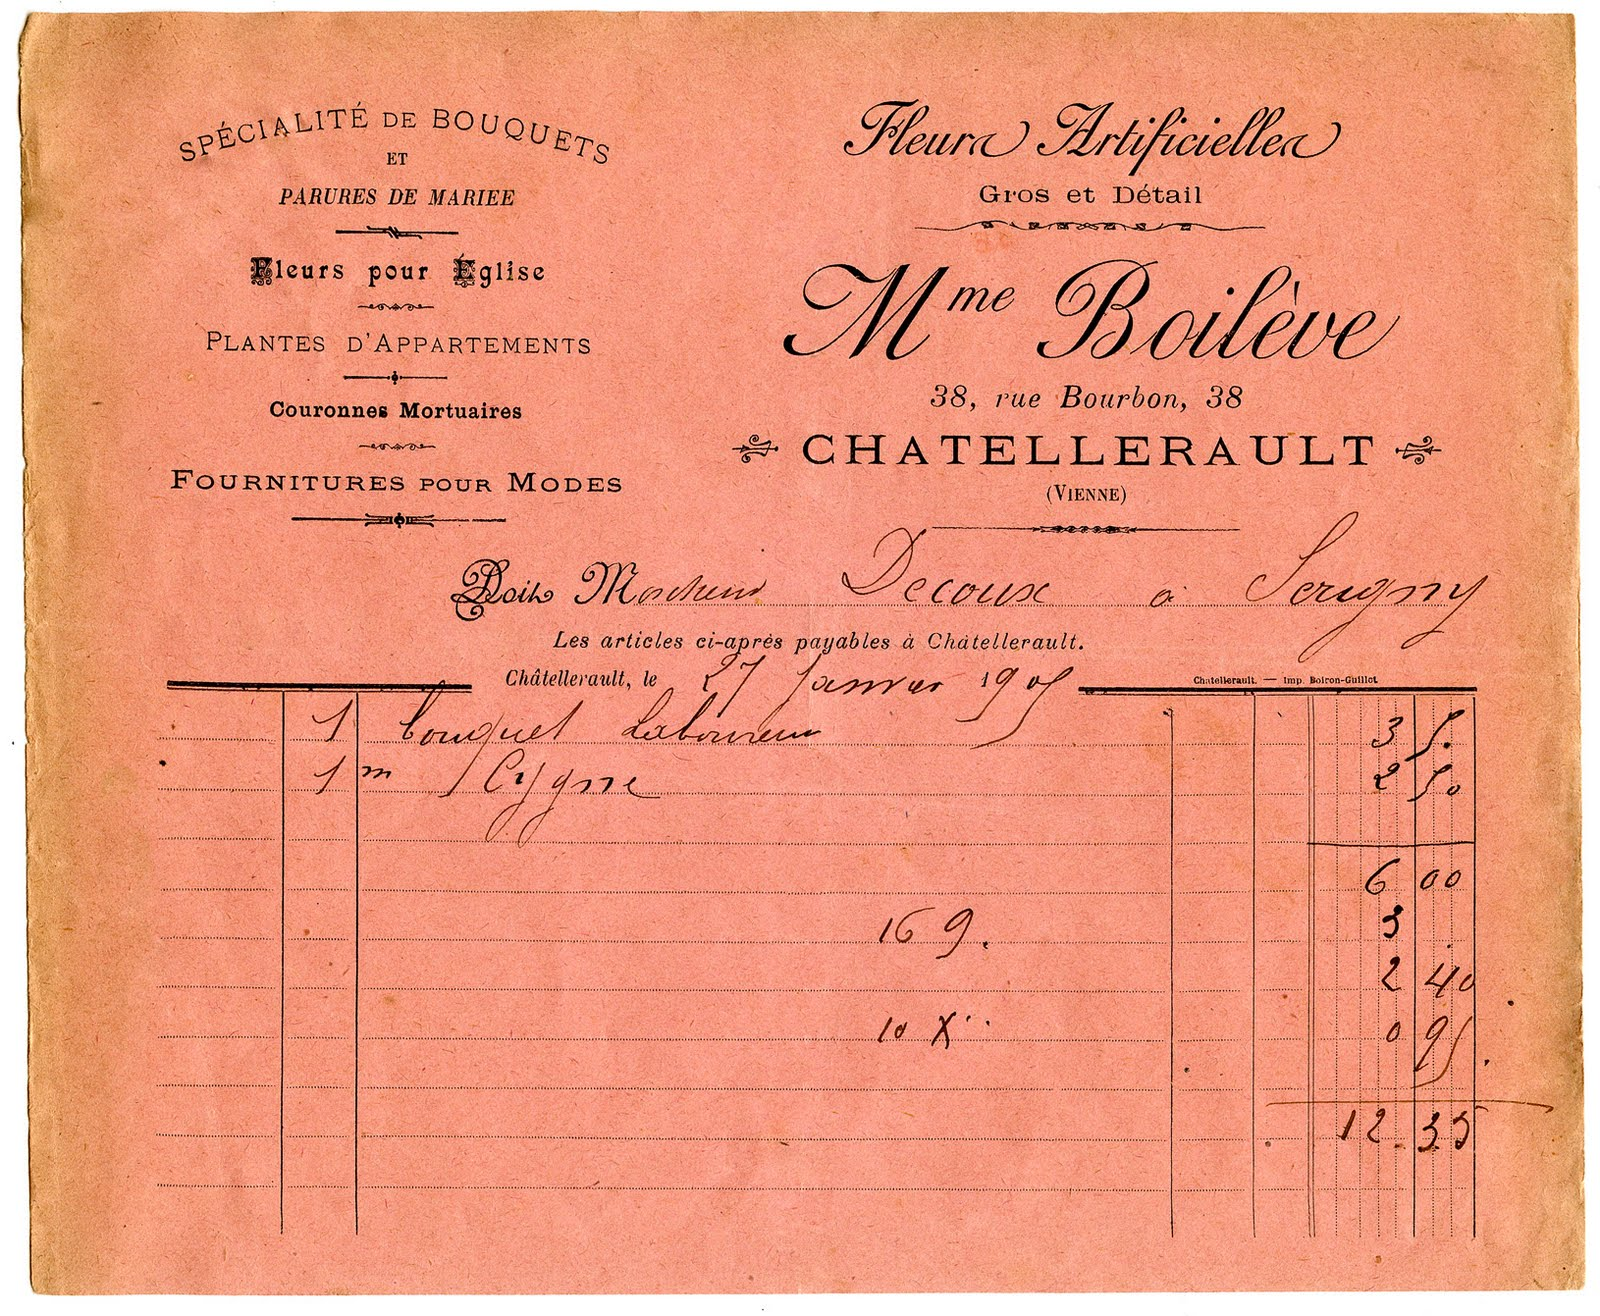 French Invoice Flower Seller Printable The Graphics Fairy - Invoice in french